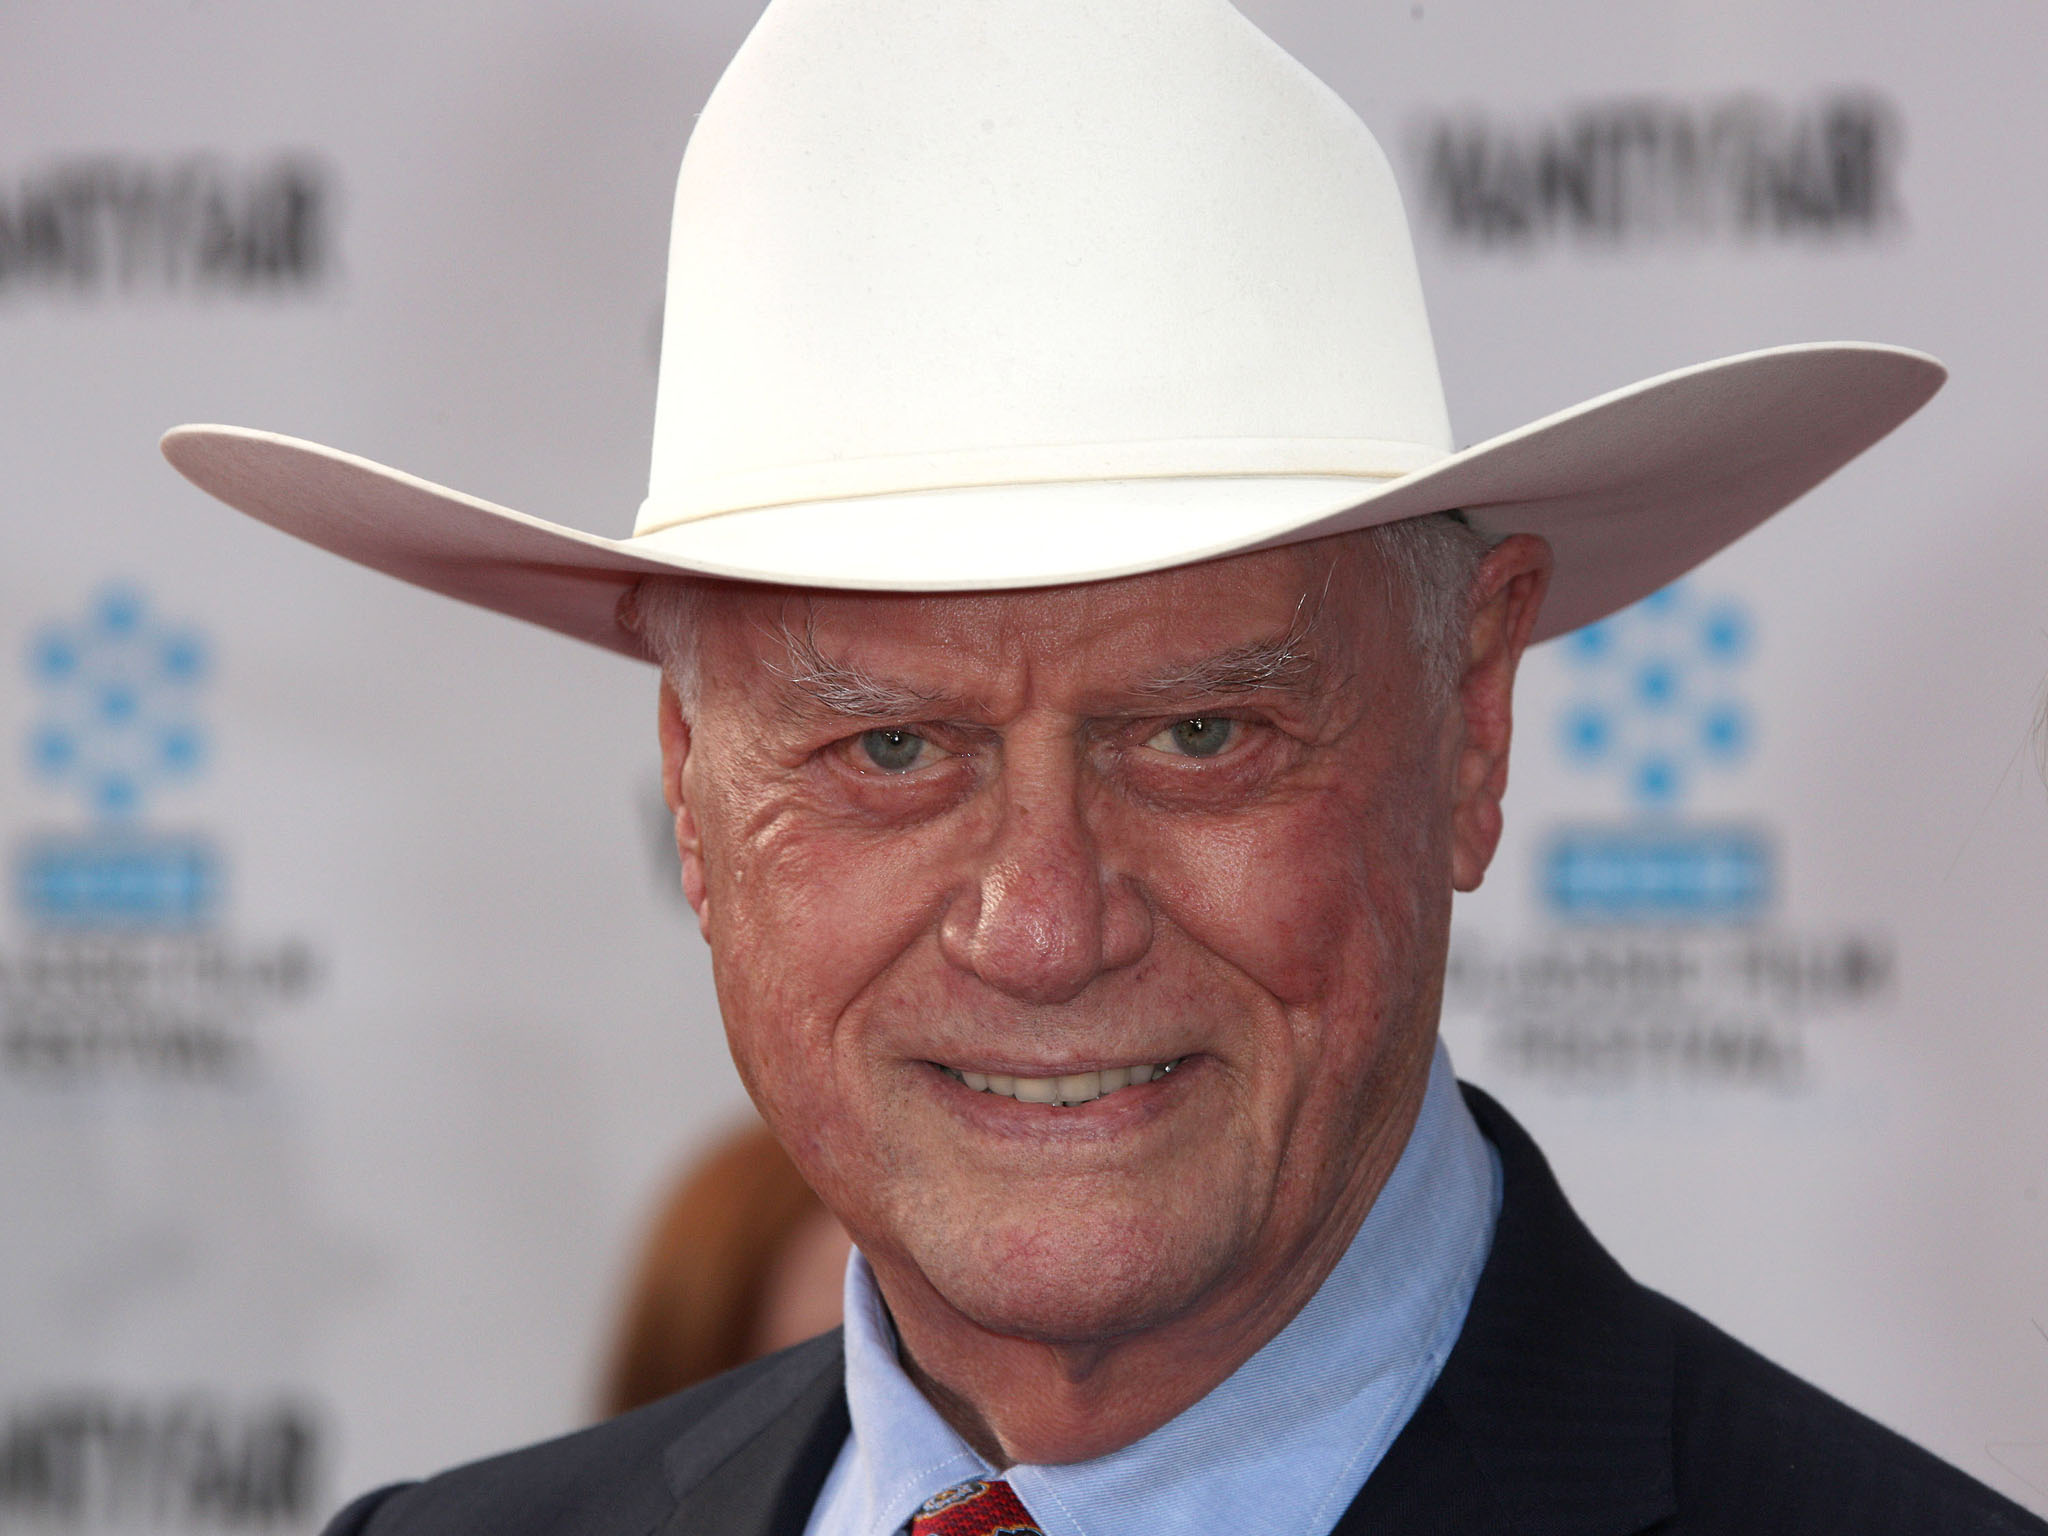 Larry Hagman, Dallas star who portrayed JR Ewing dies at 81 - Americas - World - The Independent